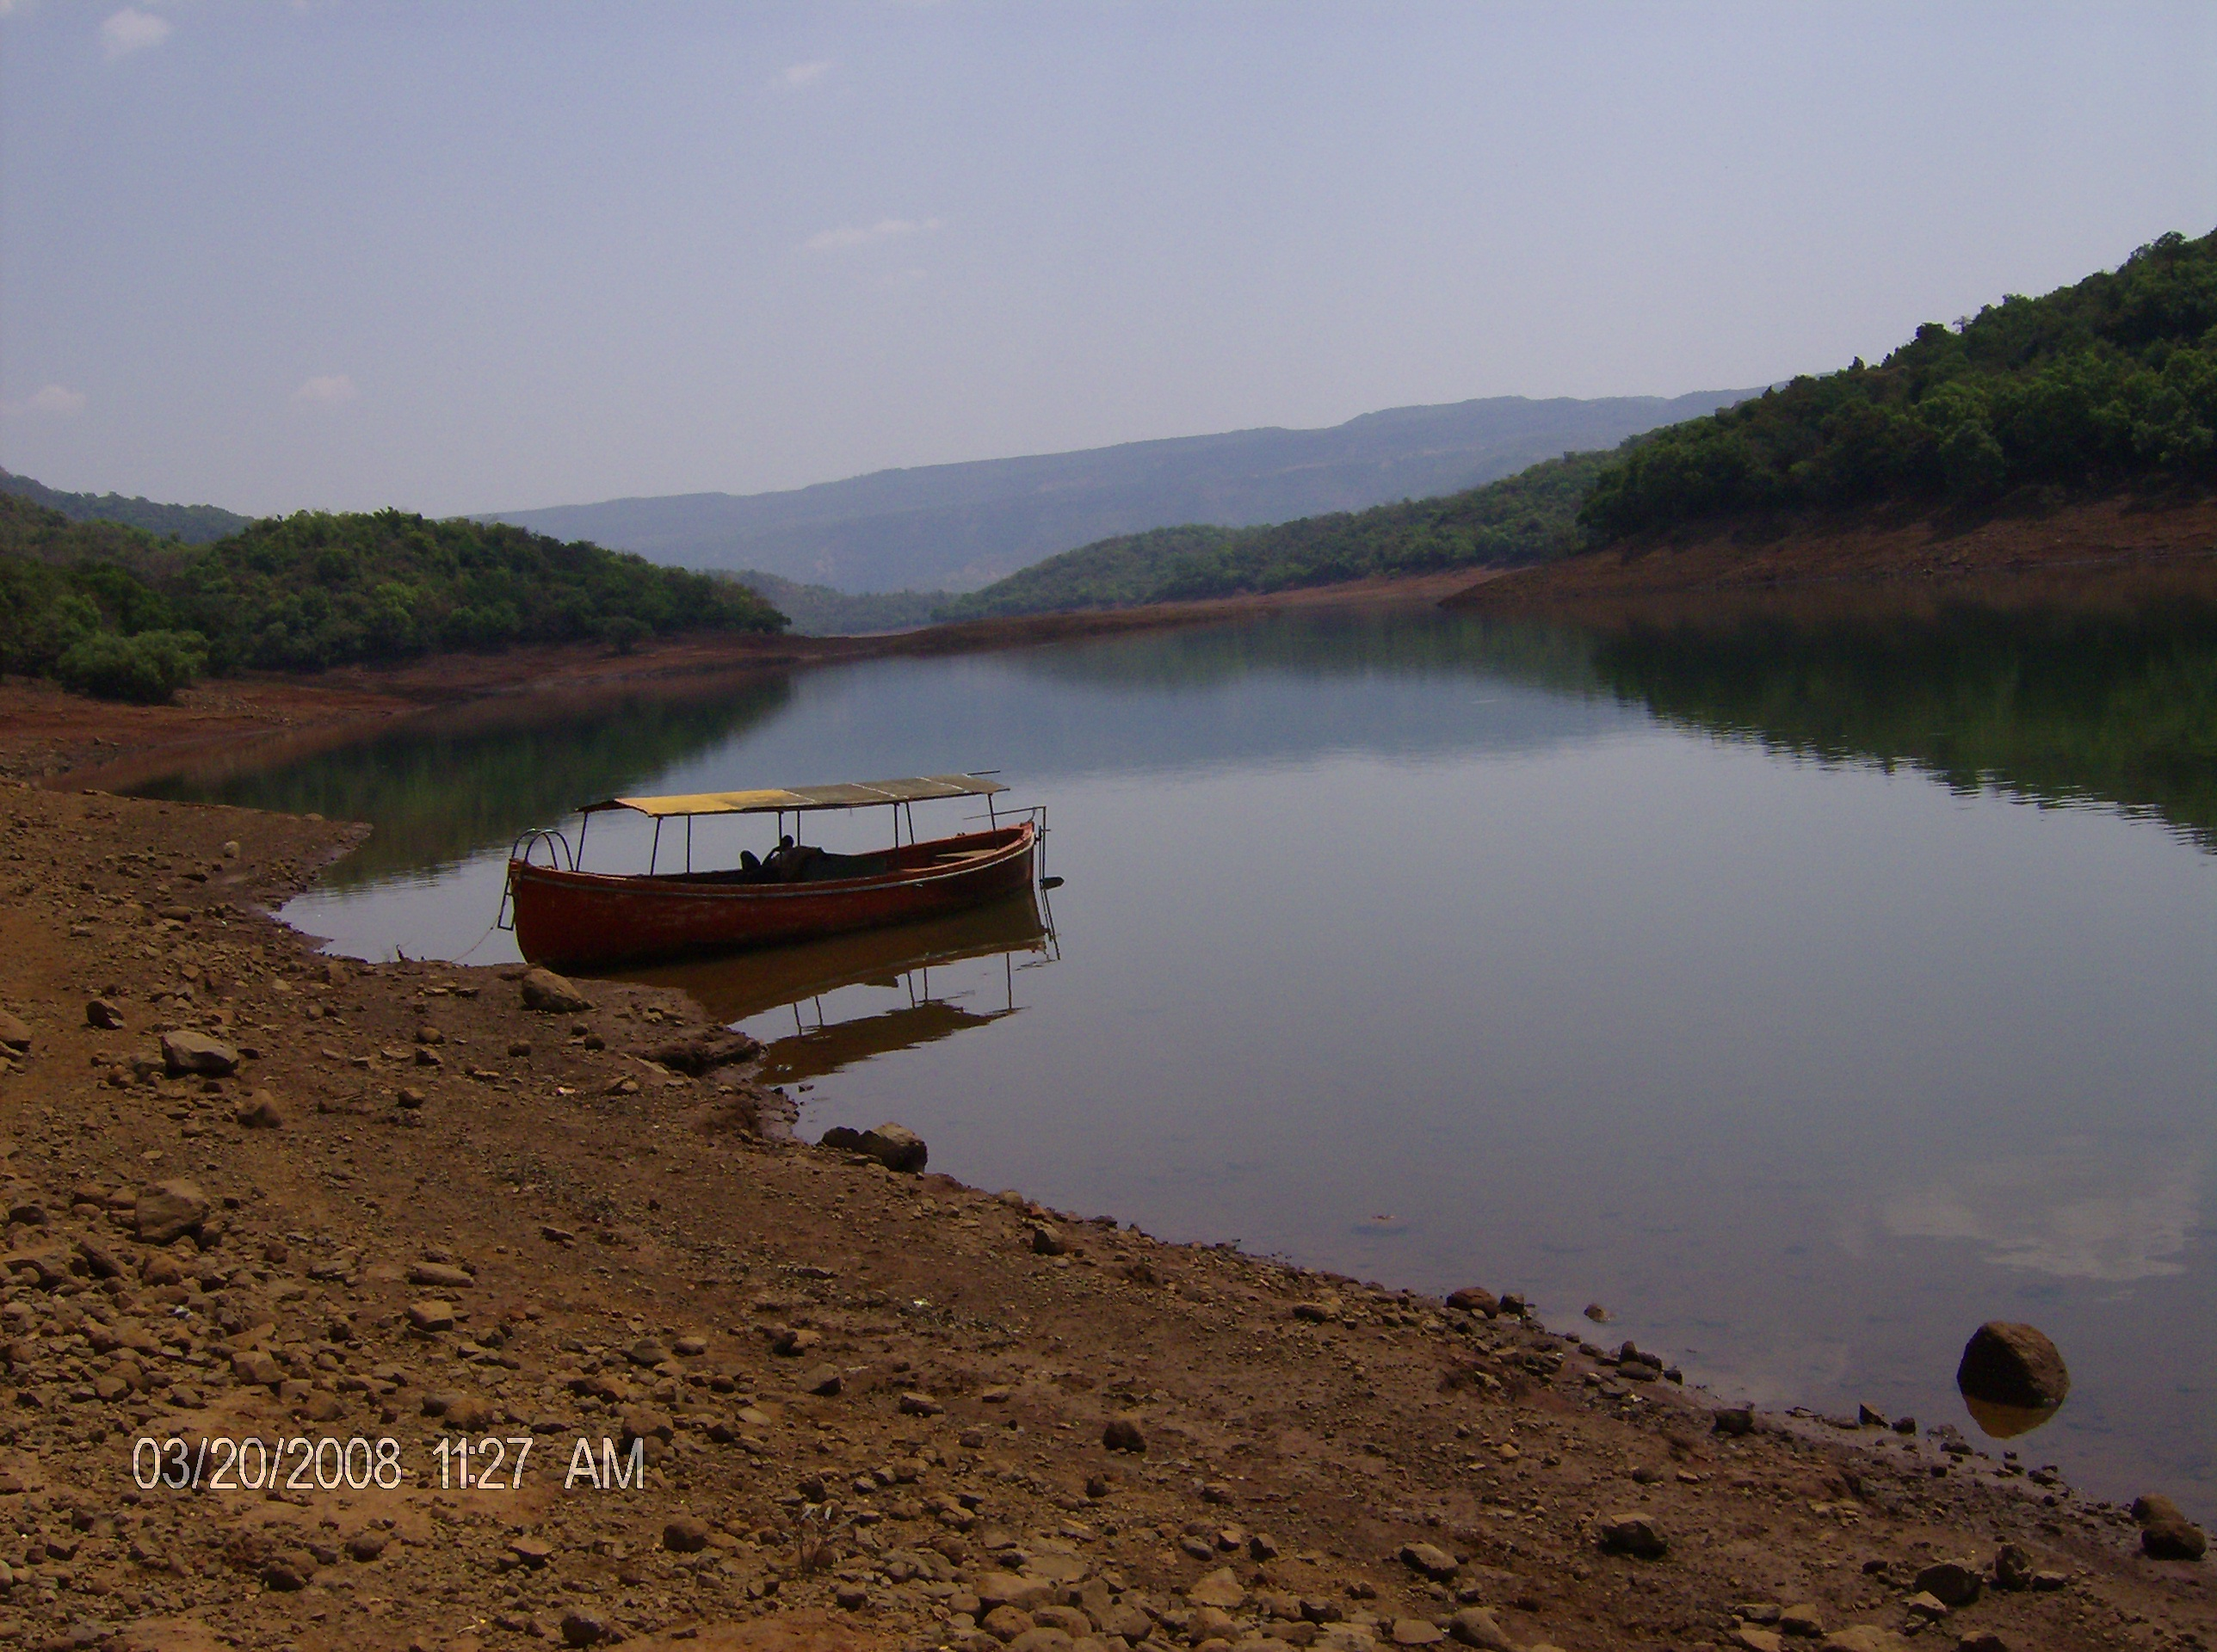 Boat by the lake photo